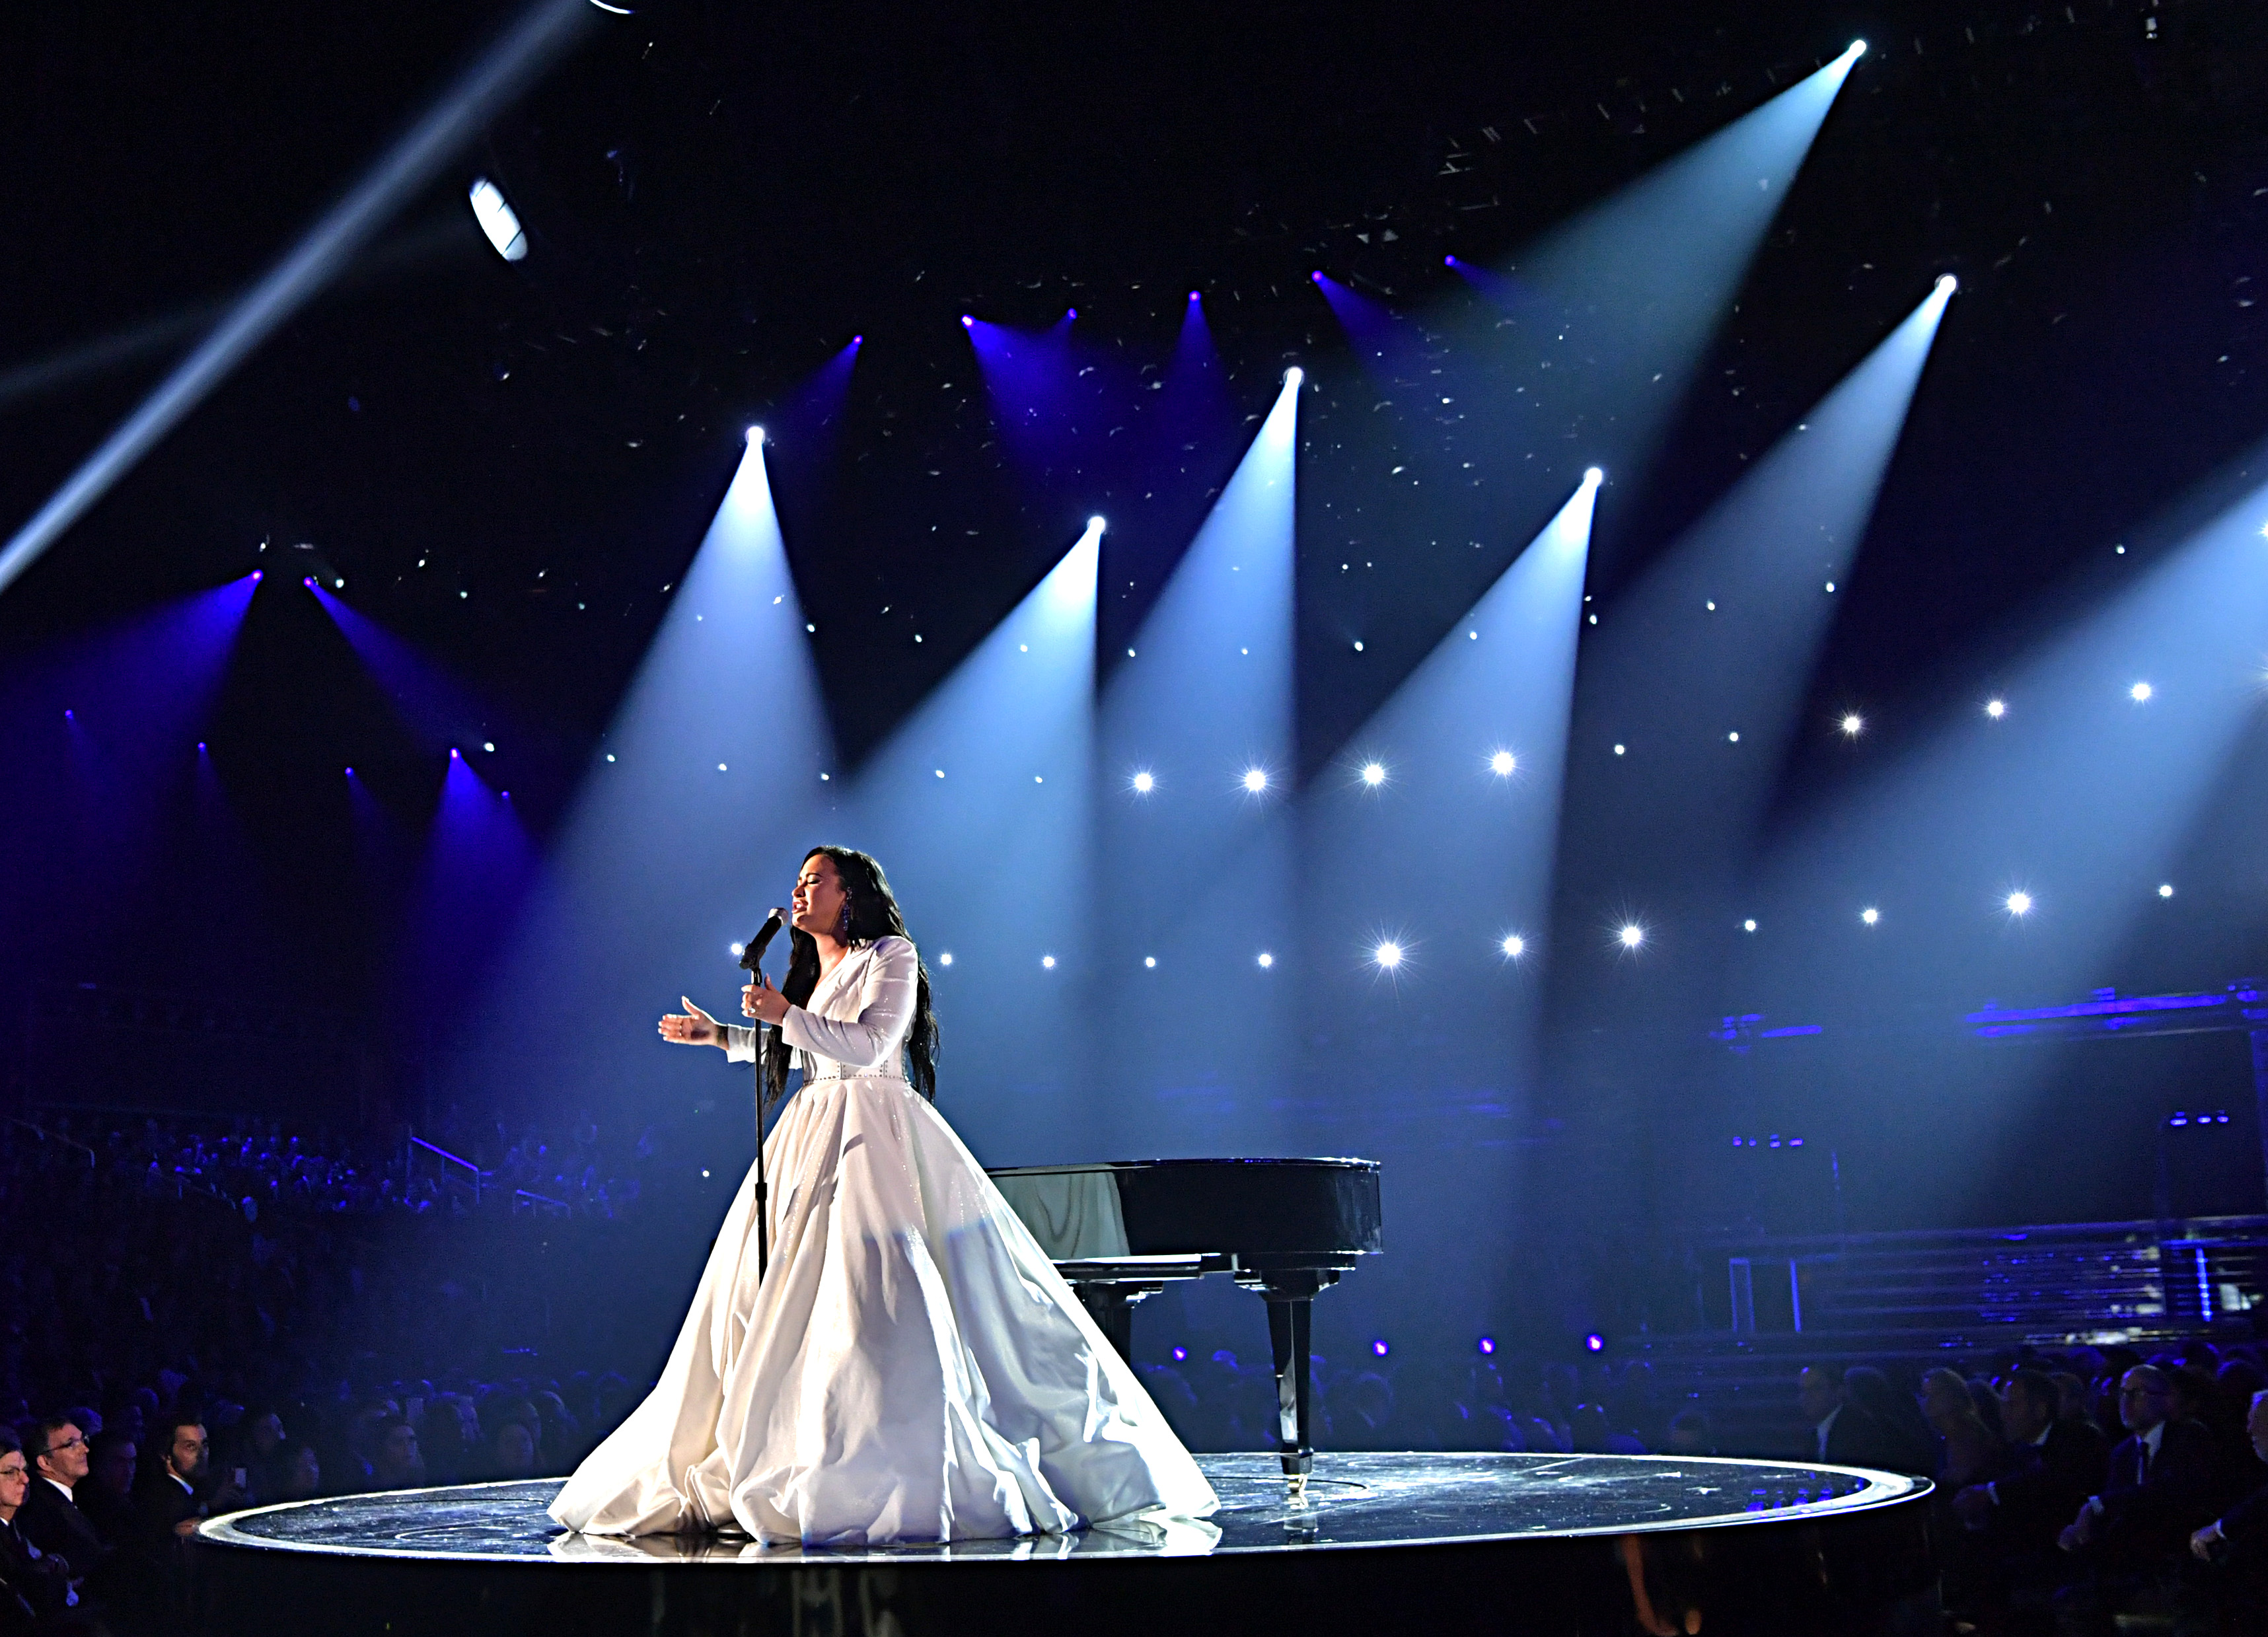 Demi Lovato performs onstage during the 62nd Annual GRAMMY Awards at STAPLES Center on January 26, 2020 in Los Angeles, California. (Photo by Emma McIntyre/Getty Images for The Recording Academy)